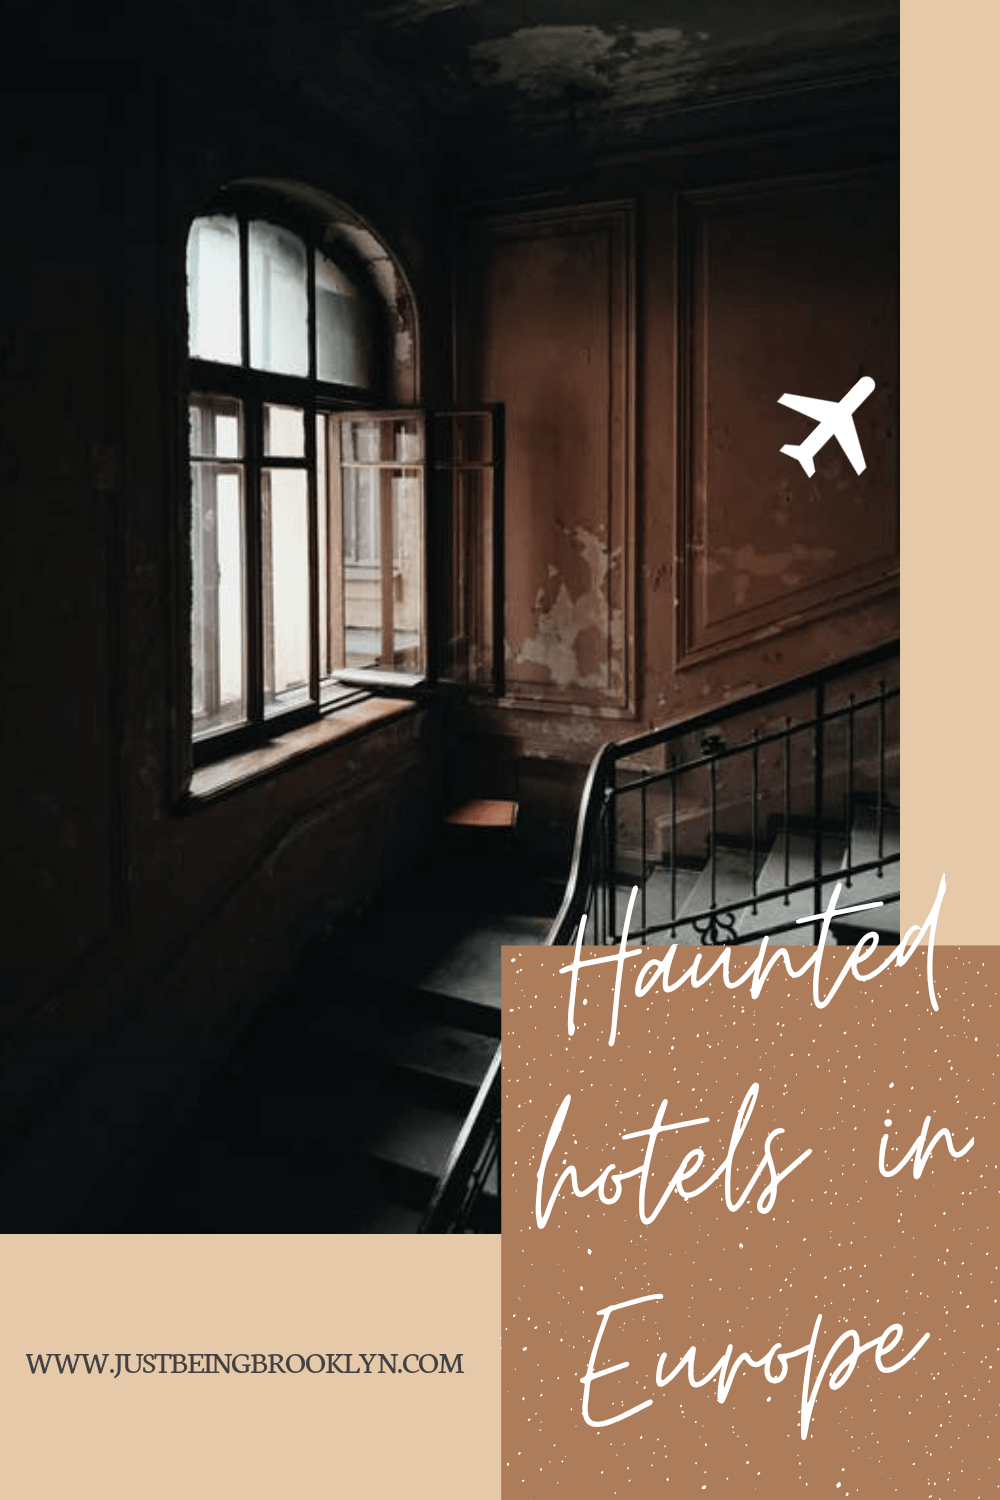 The most haunted hotels in Europe Pinterest pin